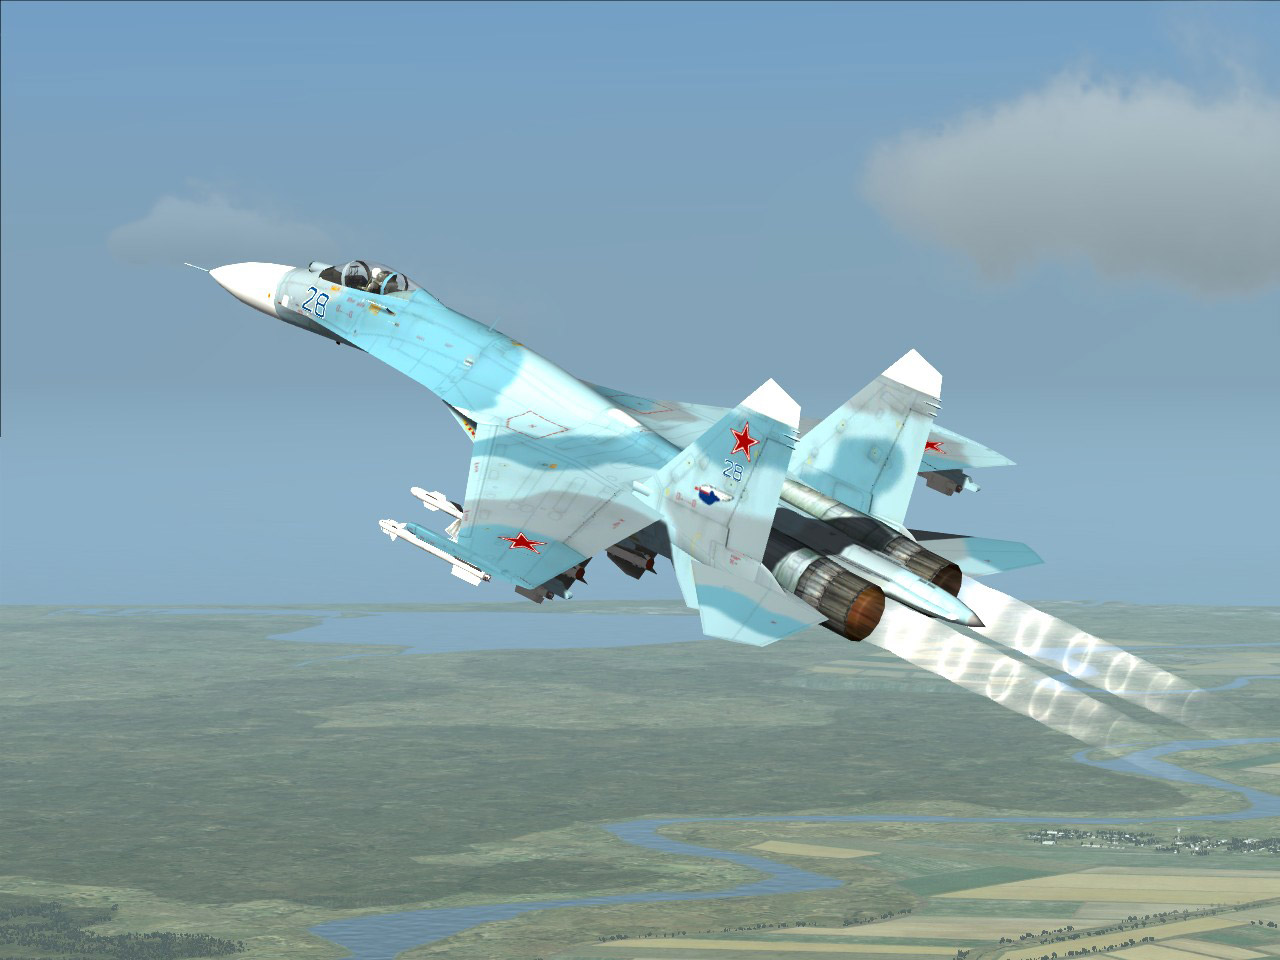 Loading su 33 flanker d carrier based fighter jet su 27 - Su 27 And Su 33 Flanker